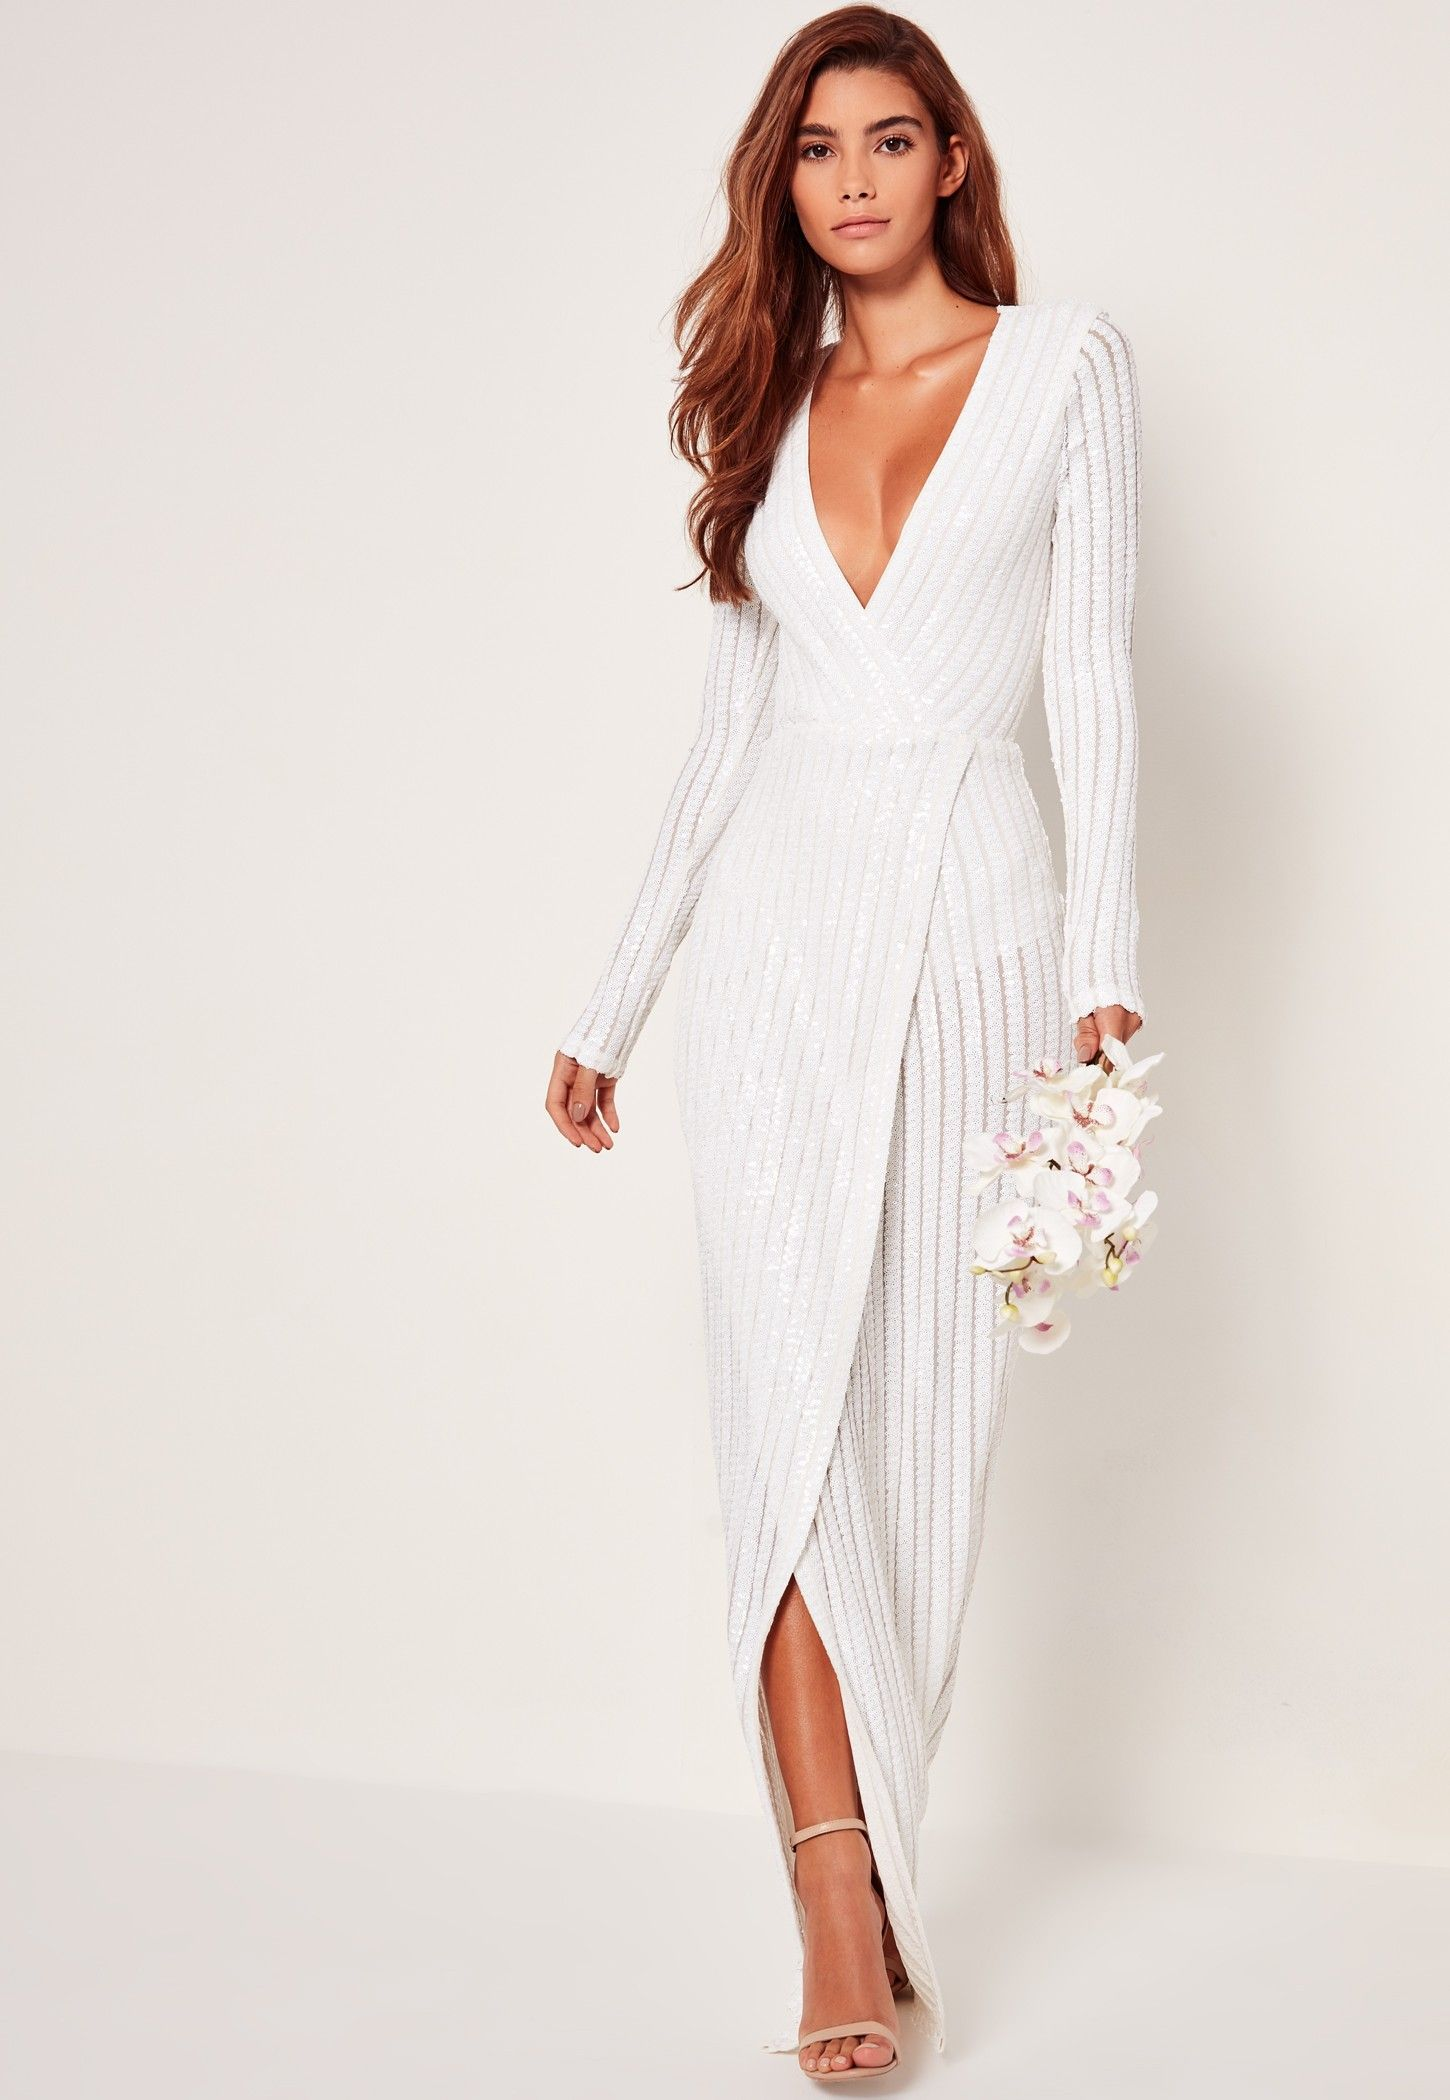 Brides And Sequins Totally Go Go For This Classic White Wedding Dress In A Maxi Length And Un Traditional Wra Wedding Dress Sequin Trendy Dresses Nice Dresses